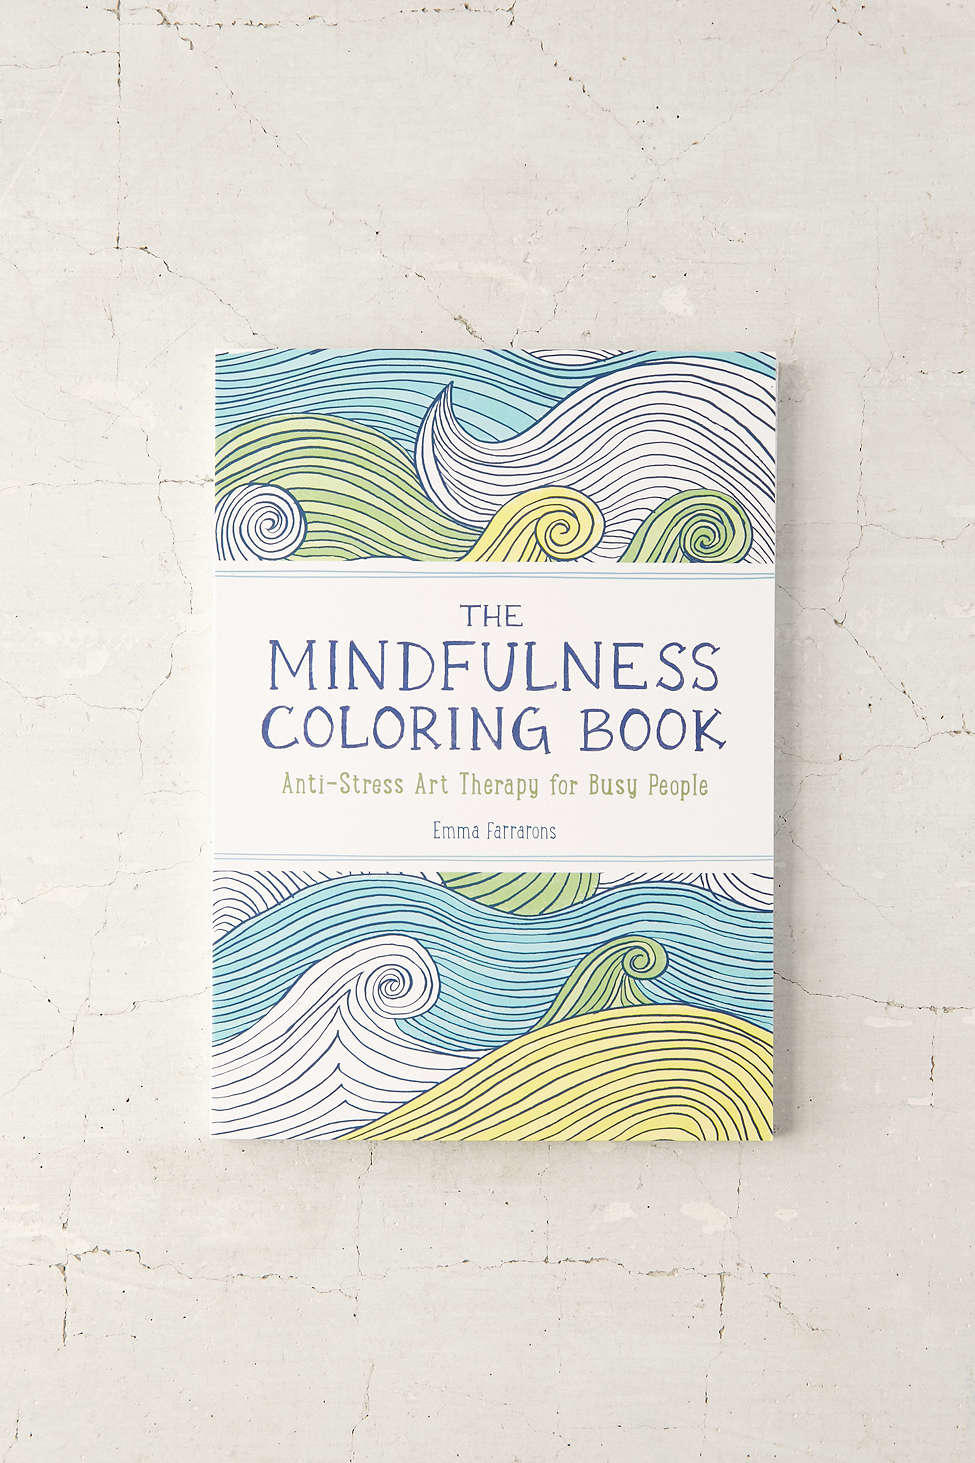 The Mindfulness Coloring Book From Urban Outfitters